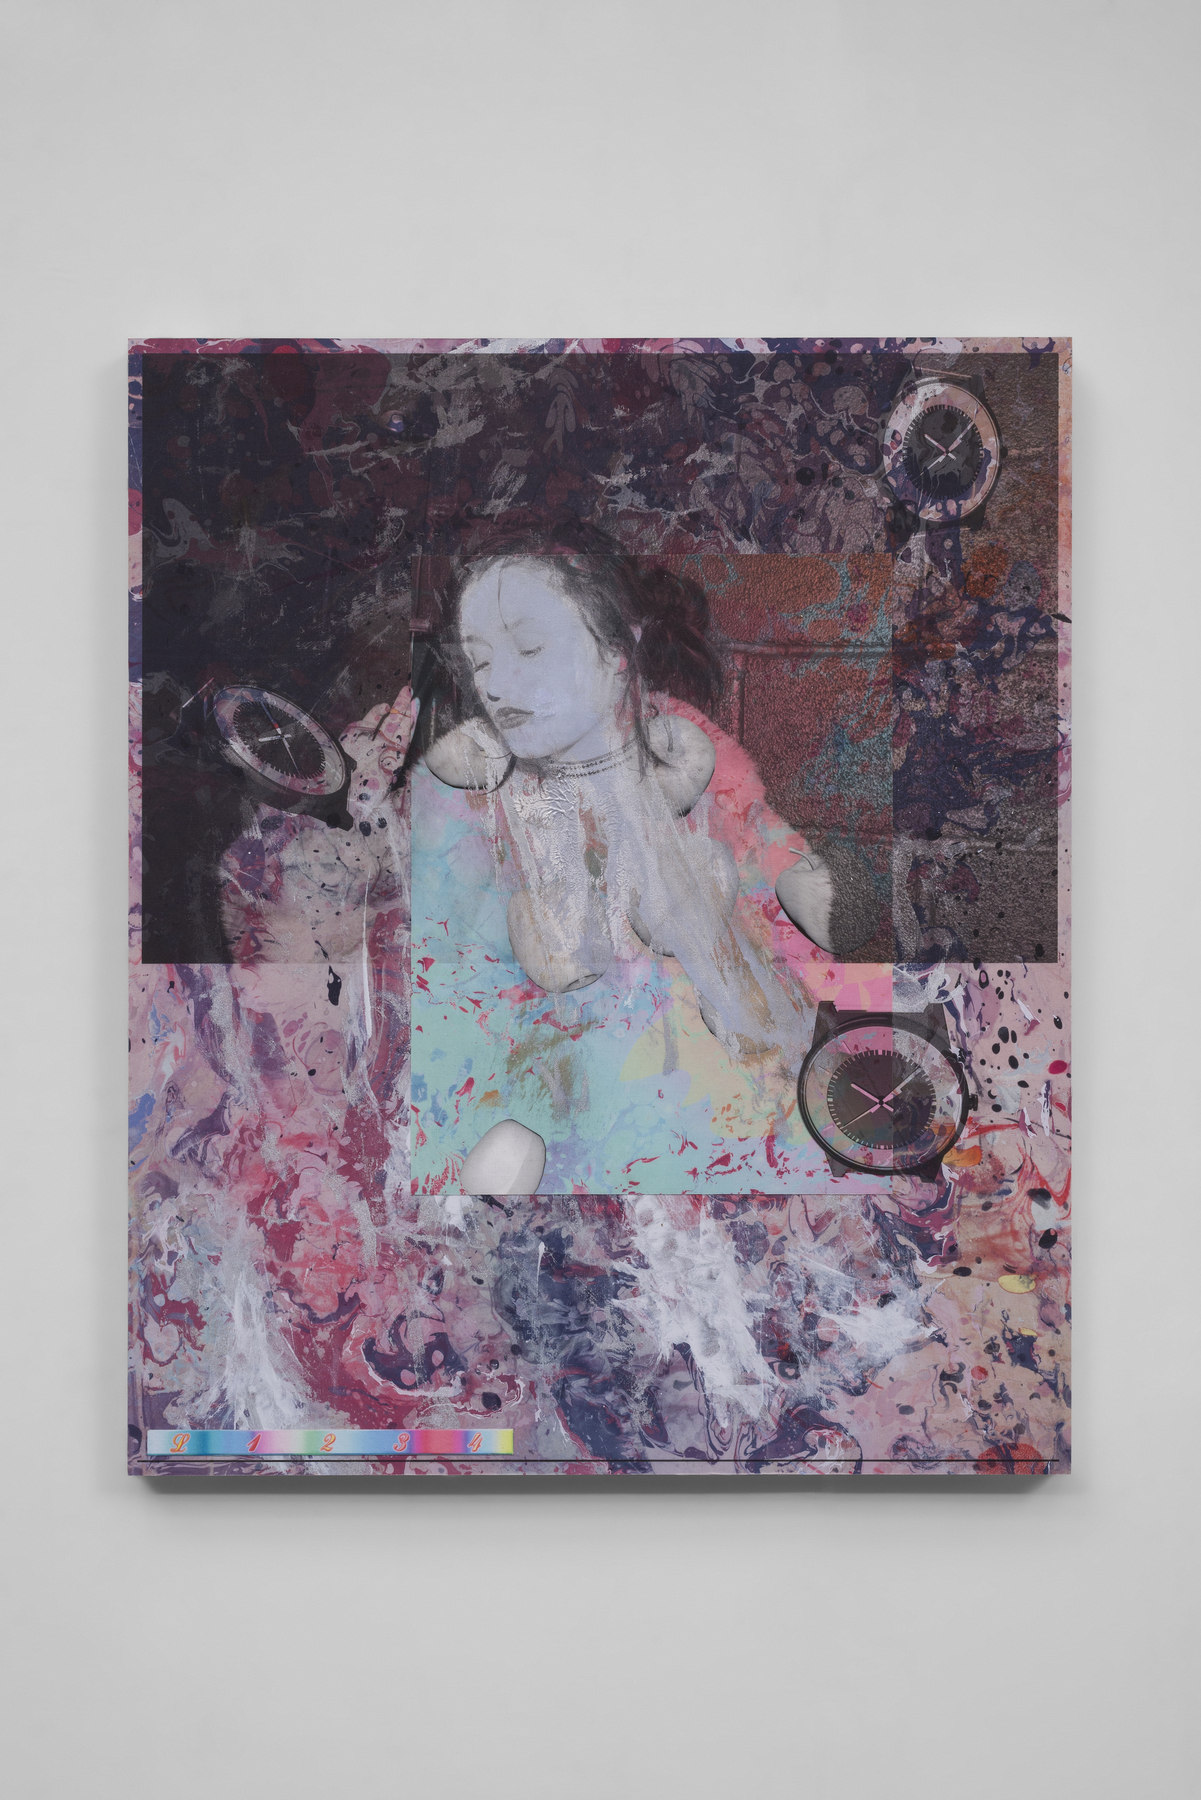 20.-Mull_Theoretical-Children-Luna-Miu-2015_K3-ink-ultra-violet-ink-and-acrylic-on-cotton-mounted-on-honeycomb-aluminum_26x21-in